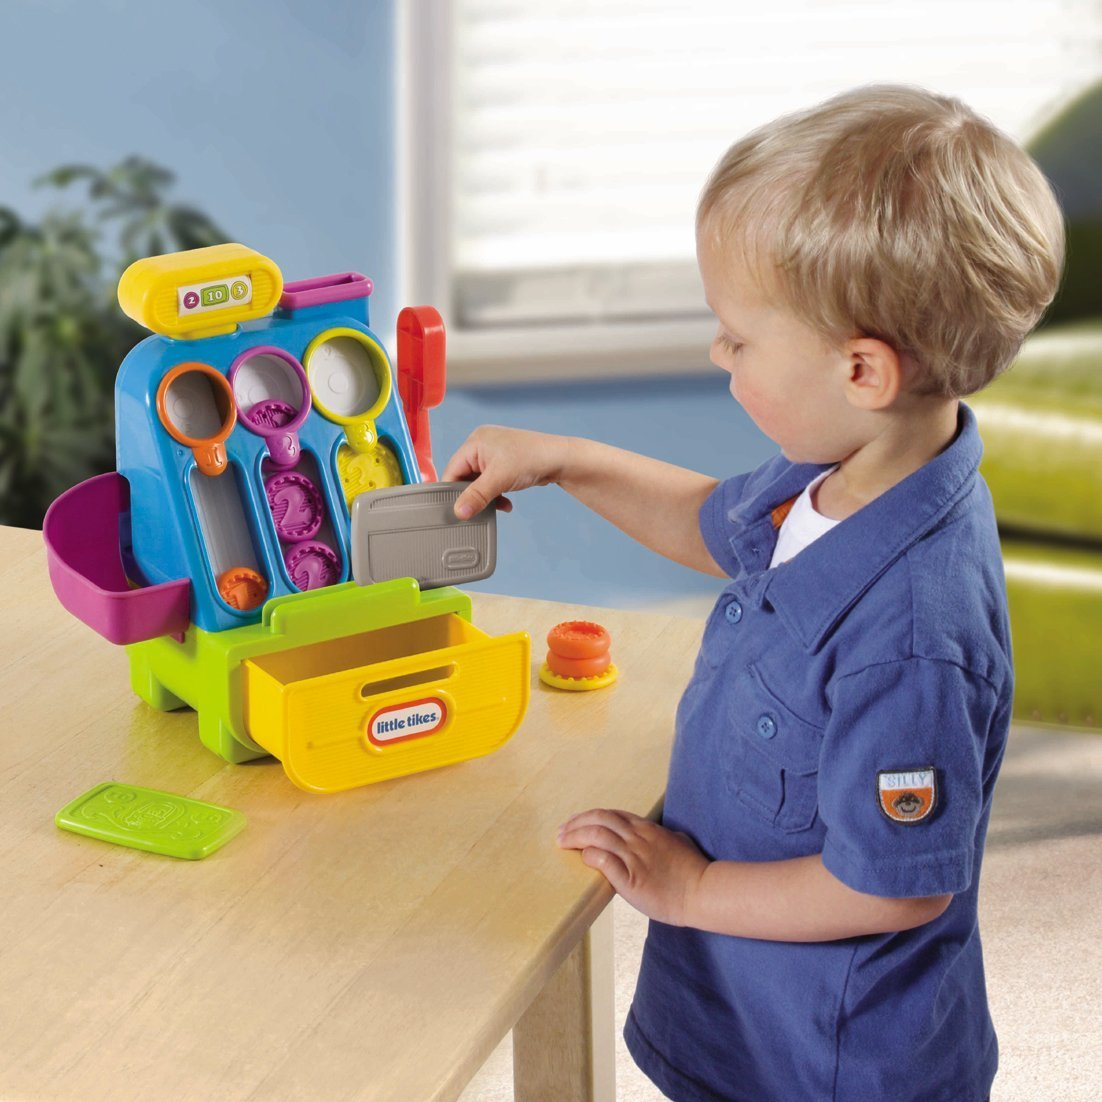 Little tikes cash register - Little Tikes Cash Register 15